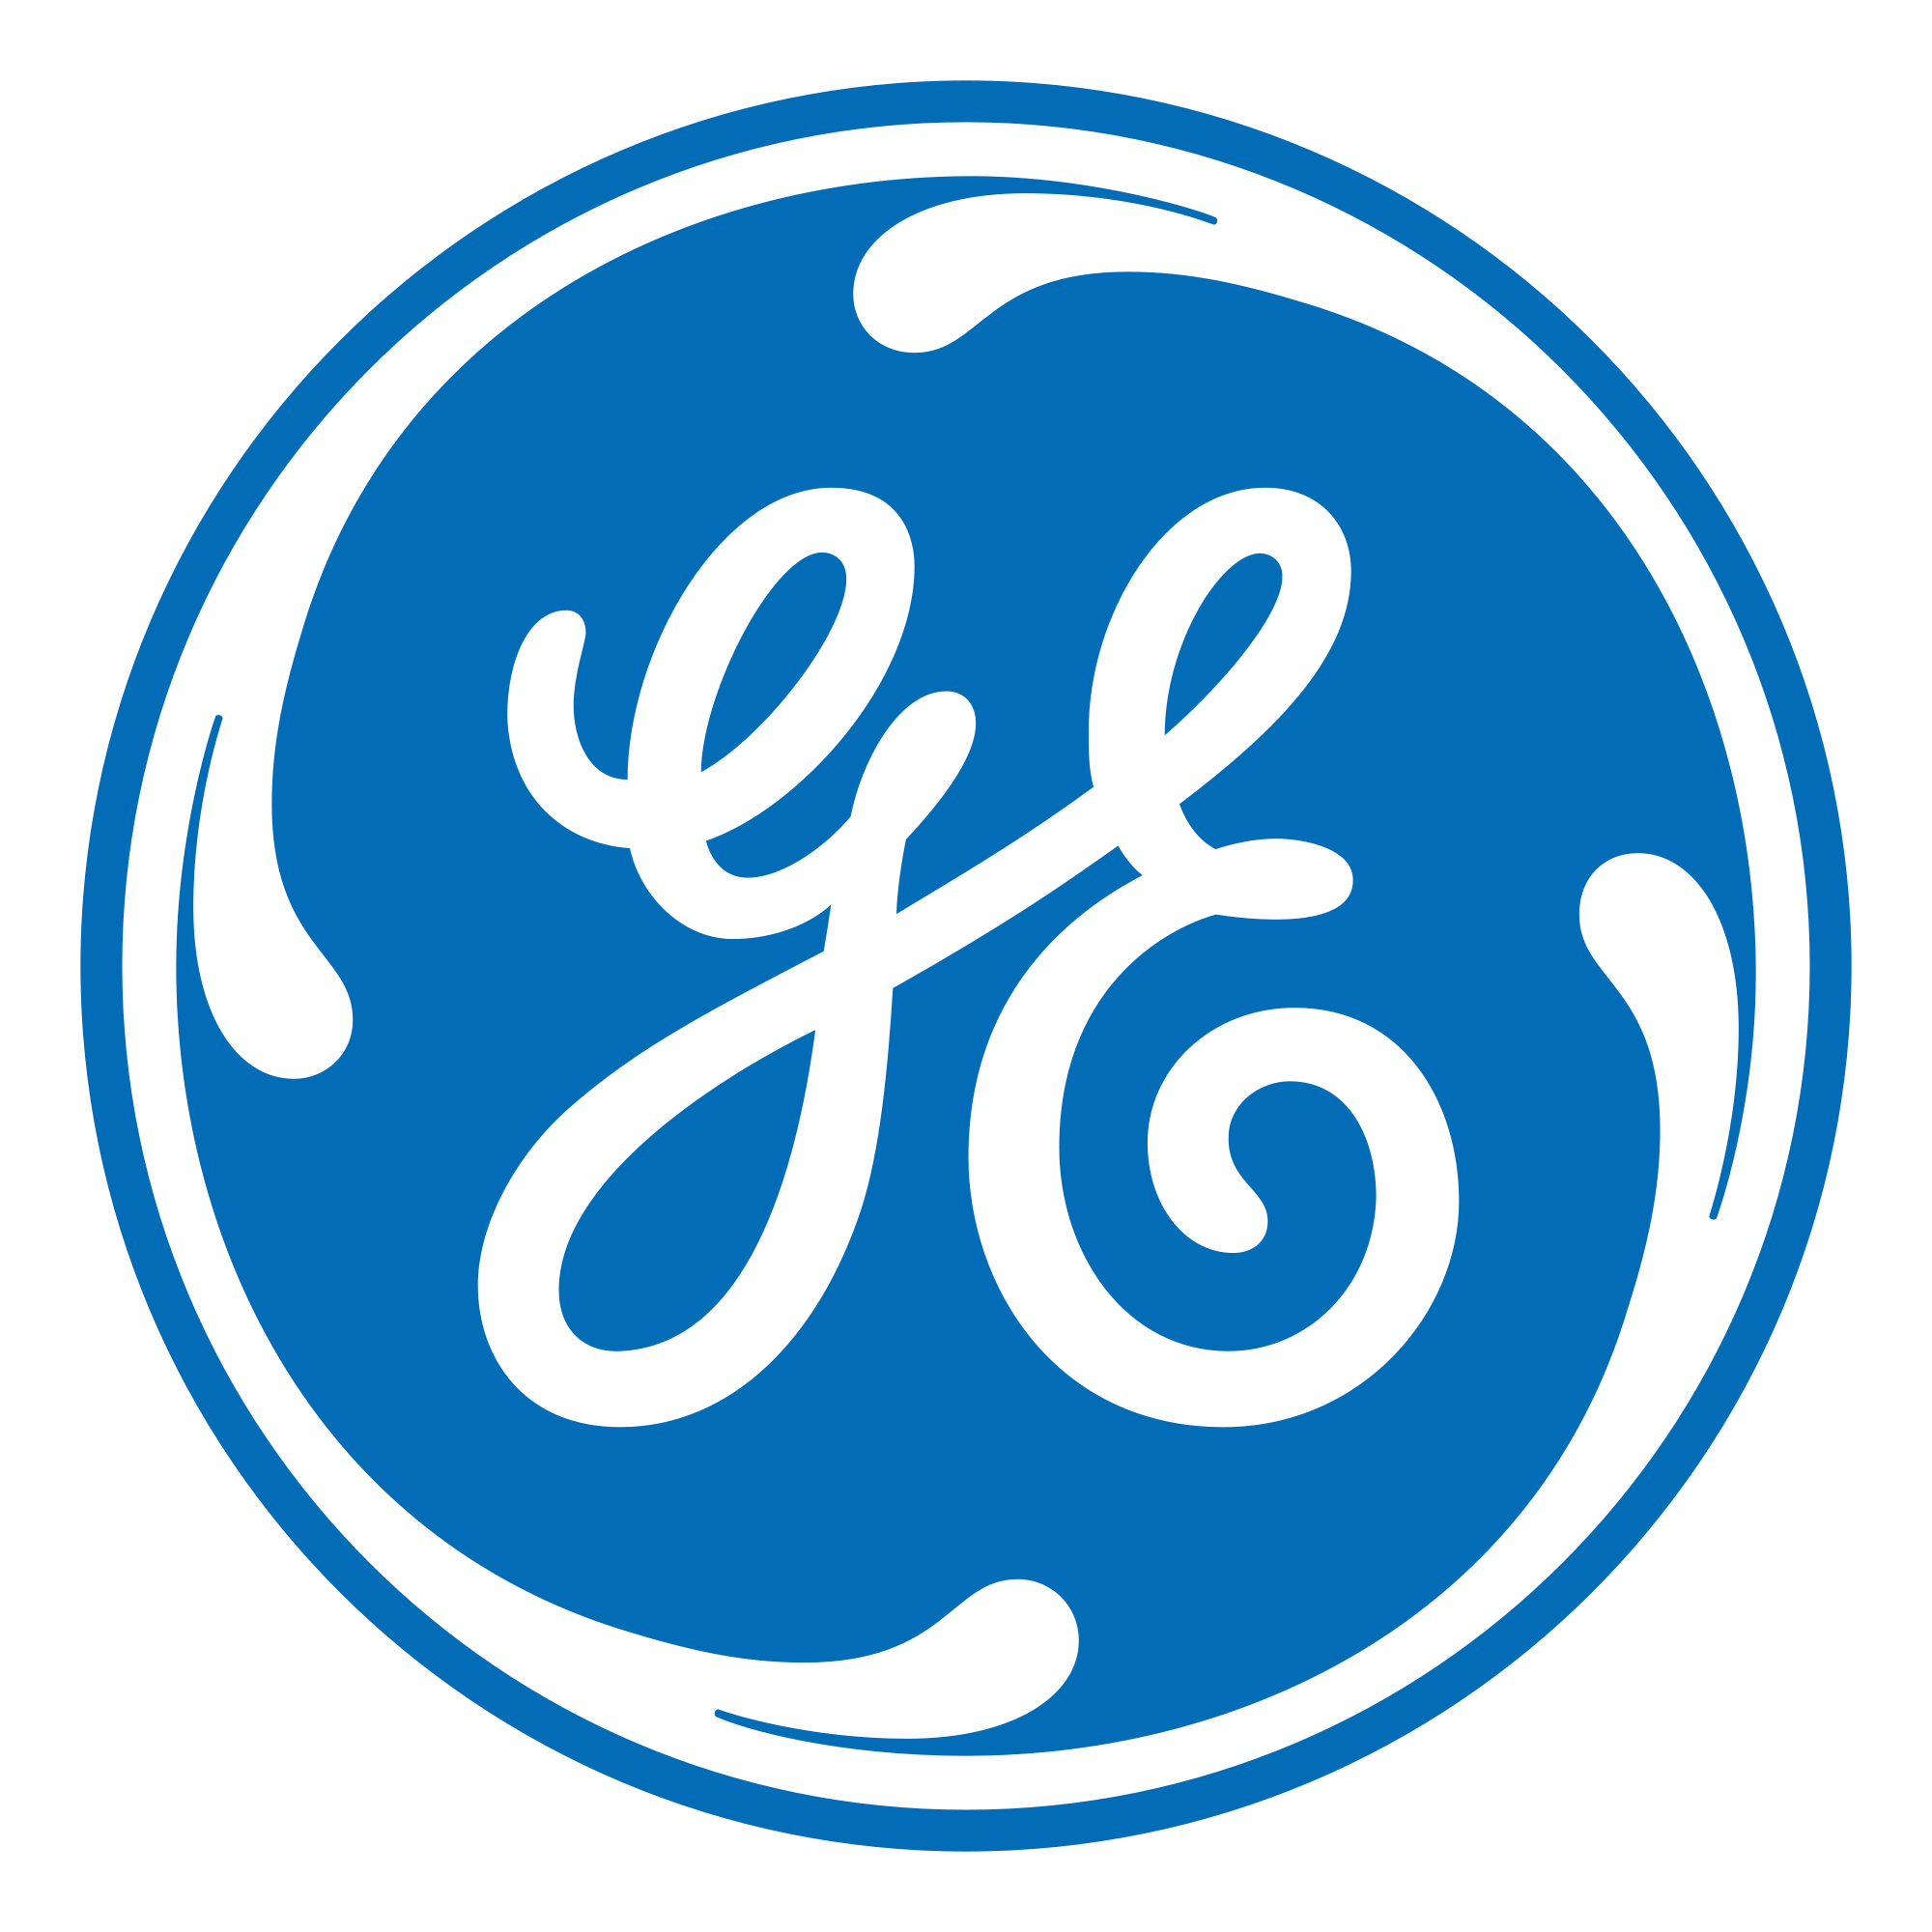 General Electric Corporation profile image